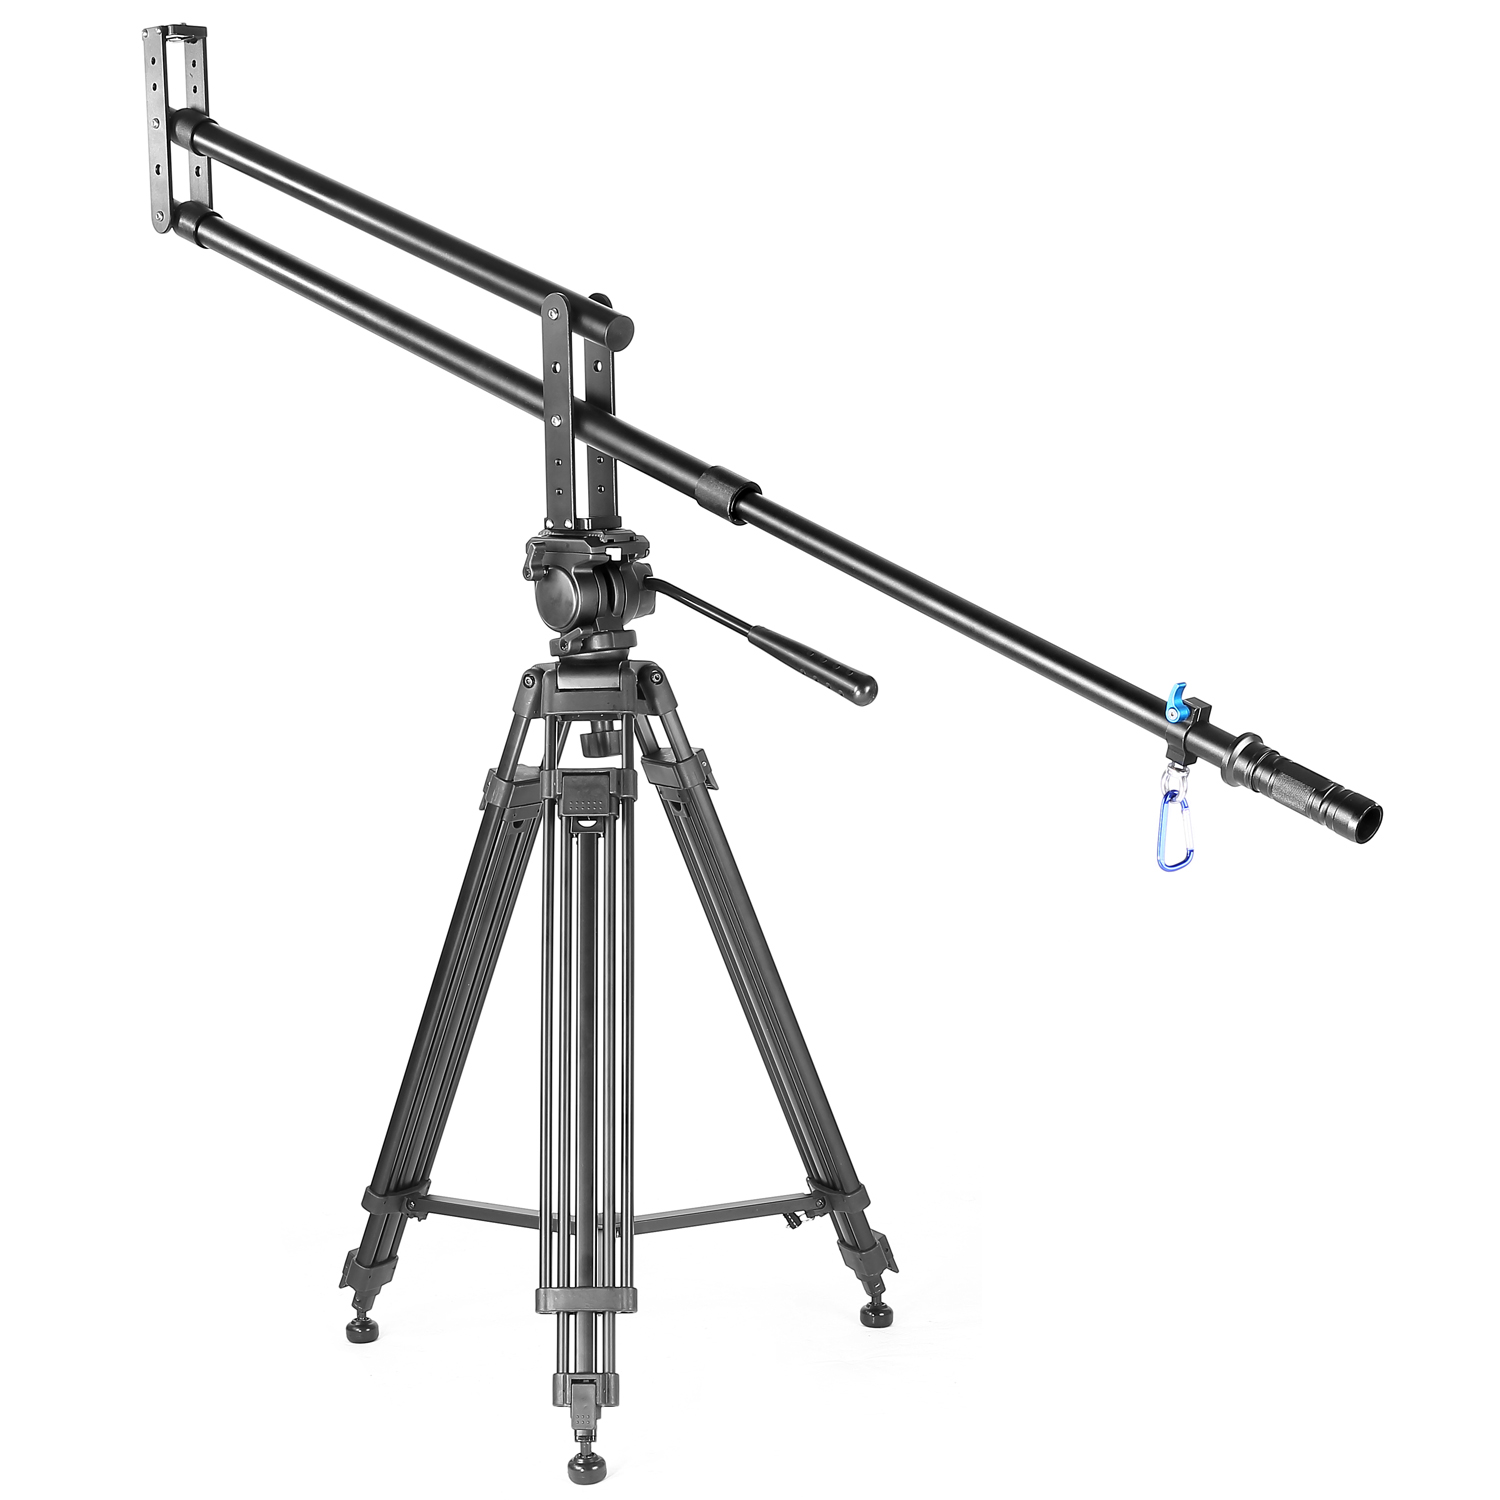 YELANGU Compact Aluminum Camera Crane Jib Arm For DSLR Cameras